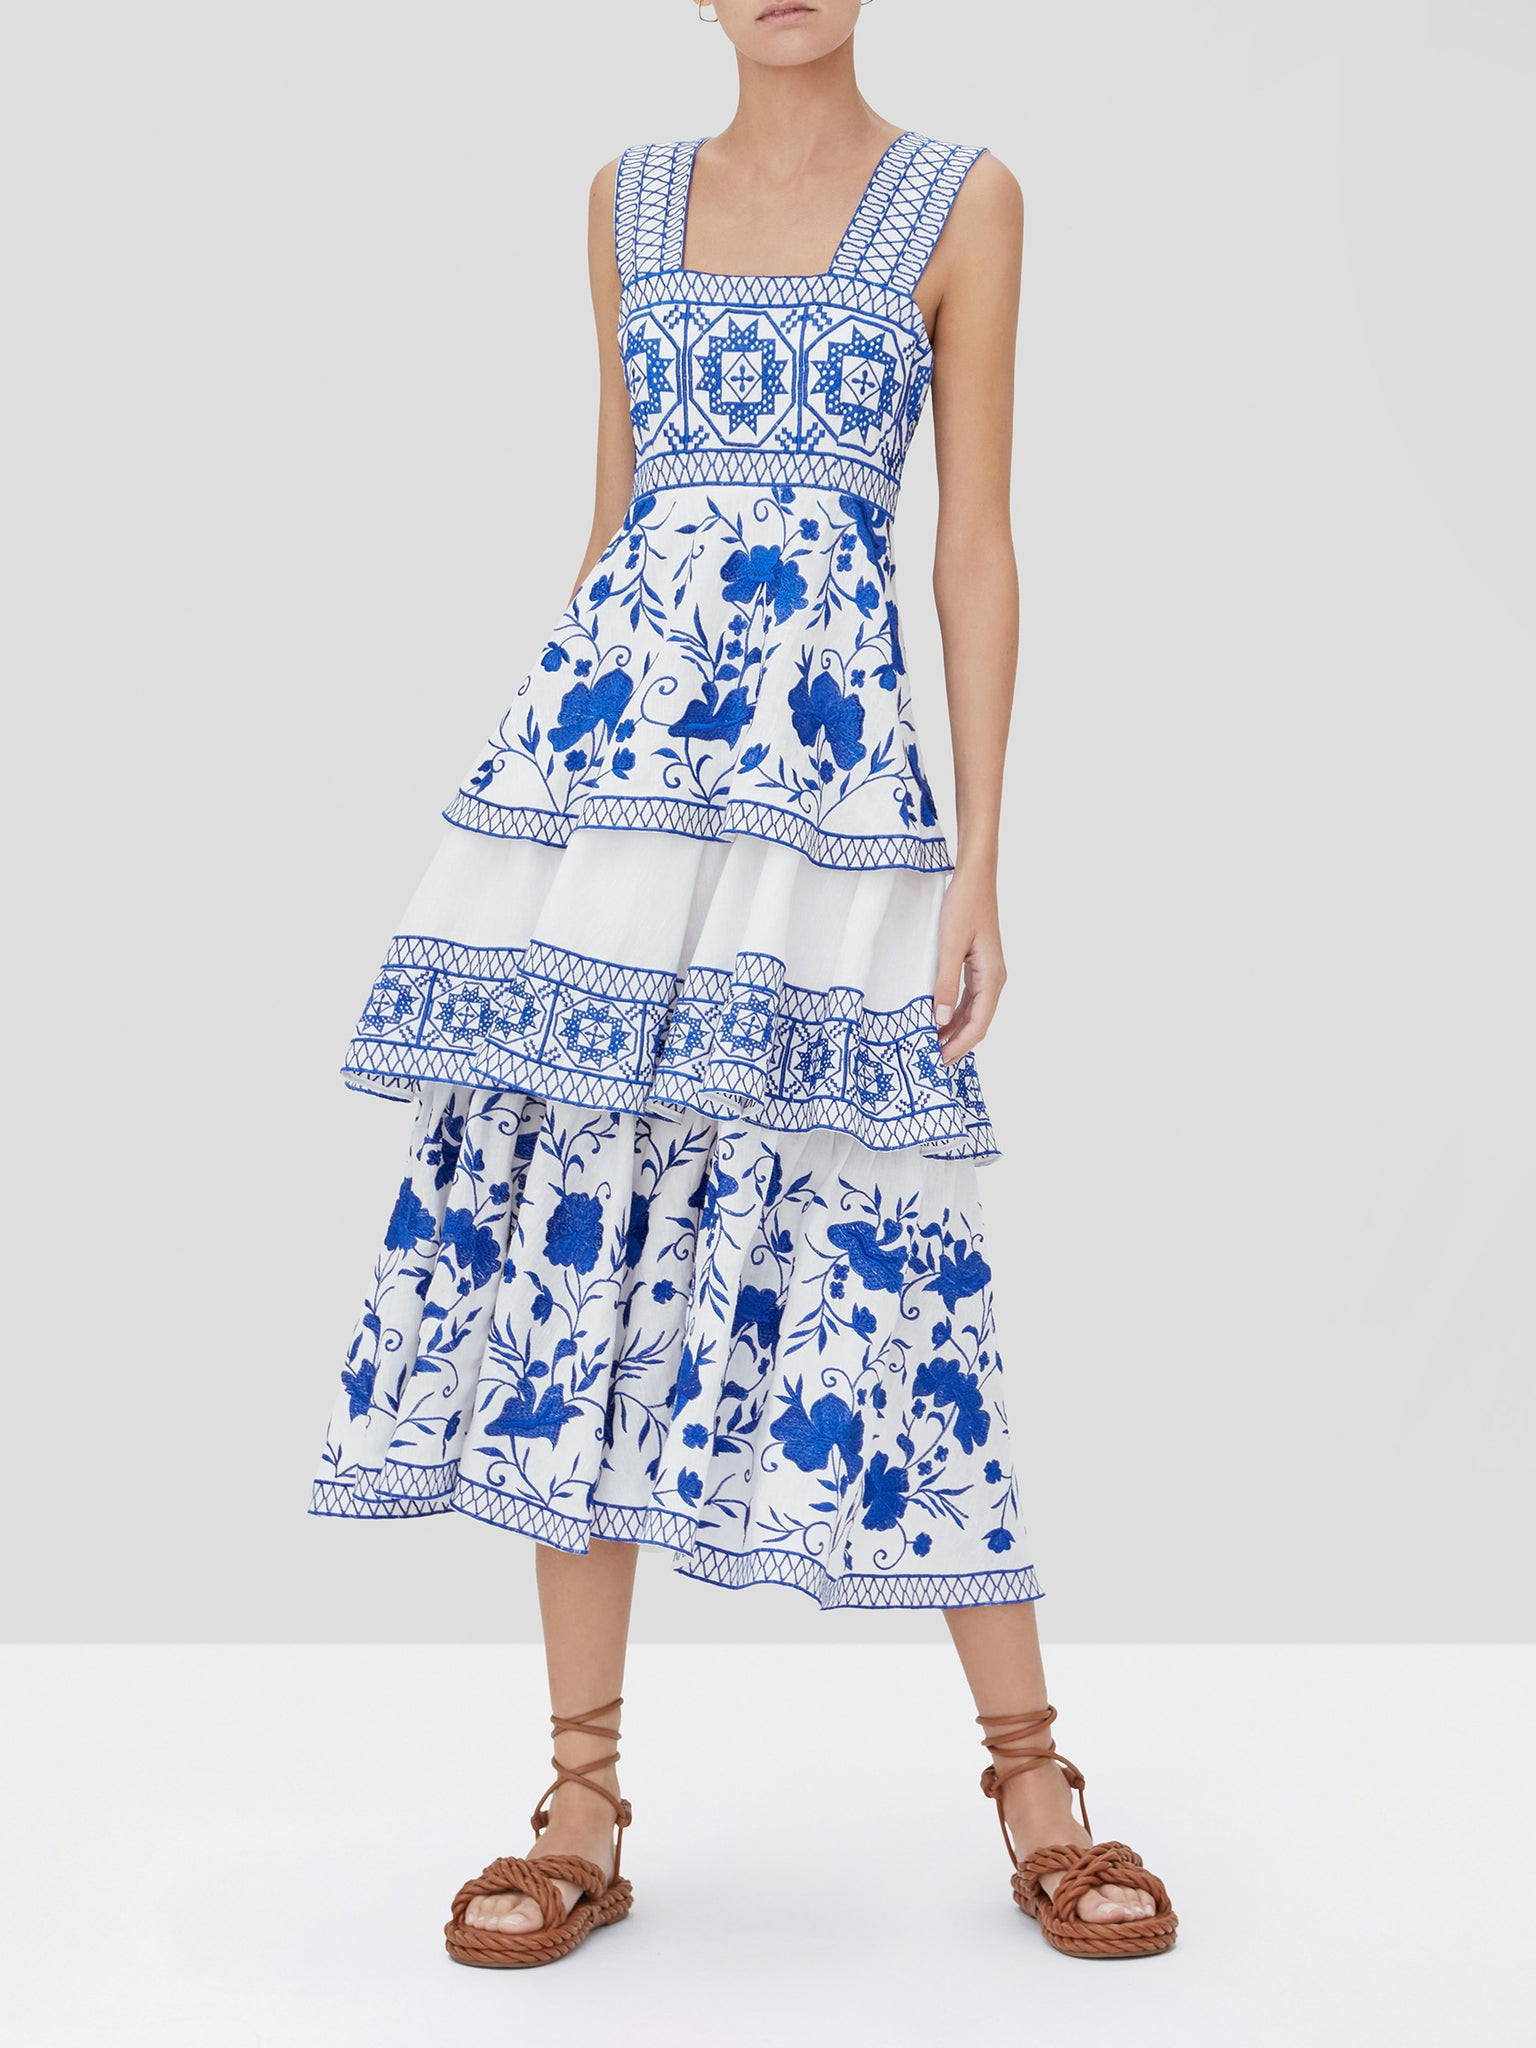 verity dress in blue embroidery